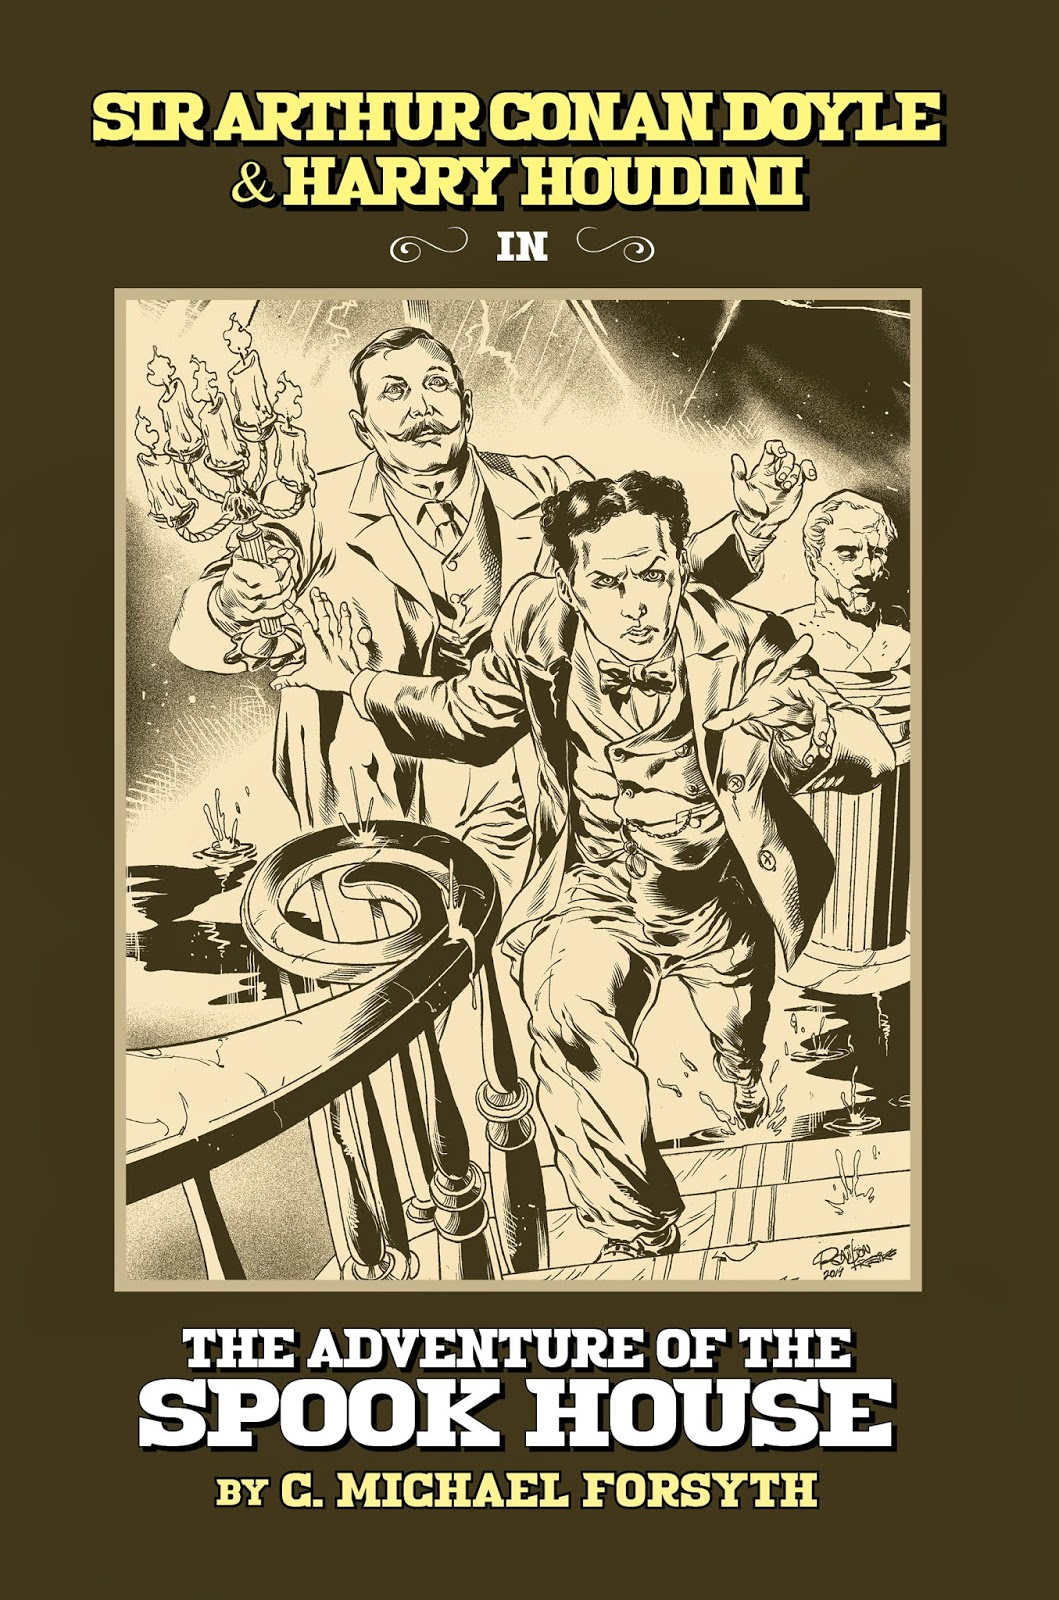 Sir Arthur Conan Doyle and Harry Houdini in The Adventure of the Spook House by C. Michael Forsyth